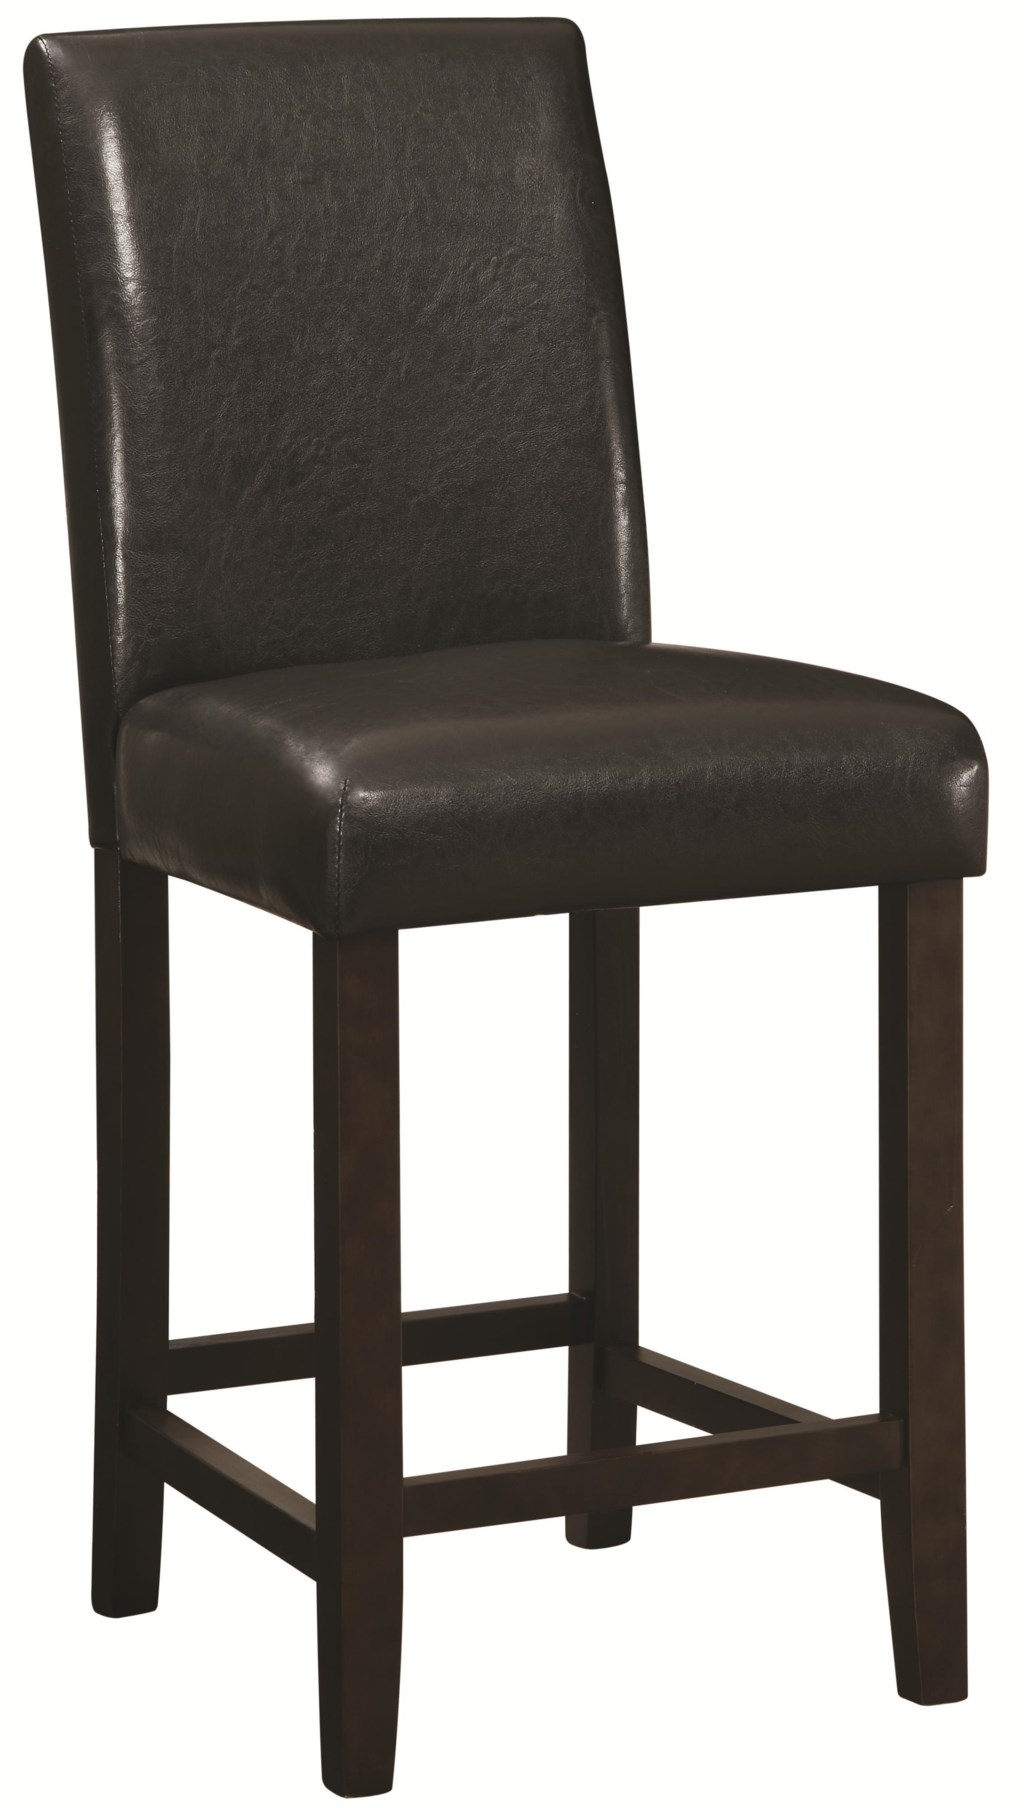 Coaster Dining Chairs And Bar Stools 24 Counter Height Stool With